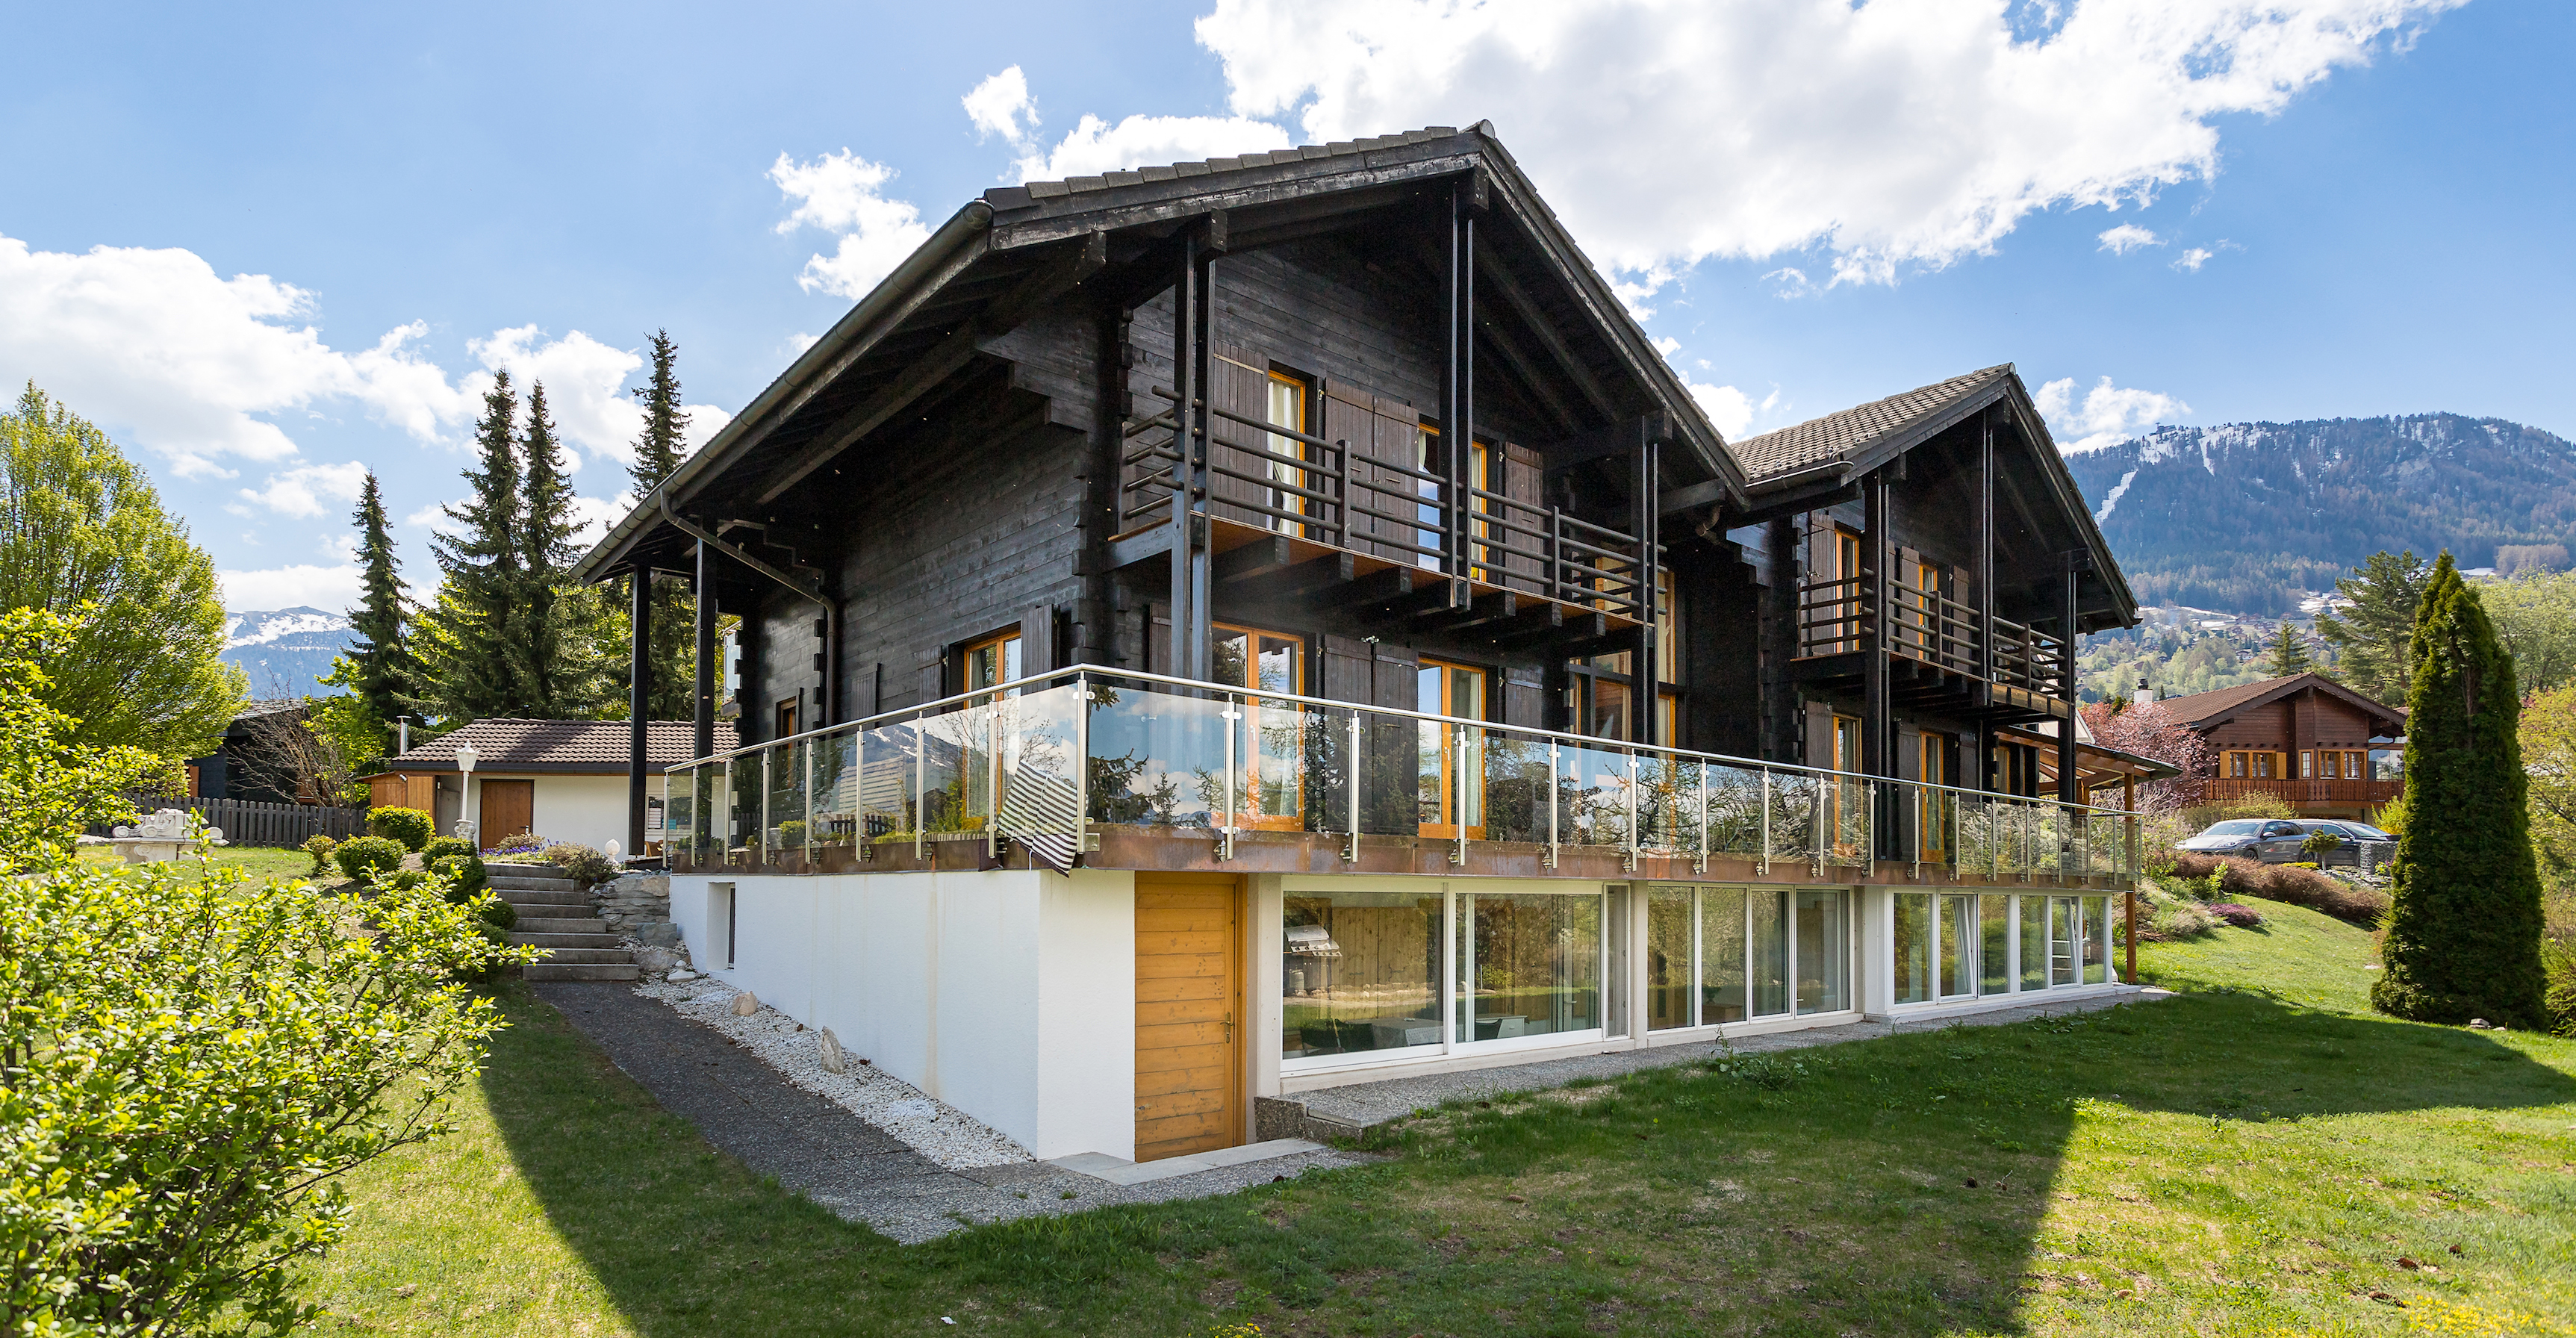 Chalet Ueli Chalet, Switzerland